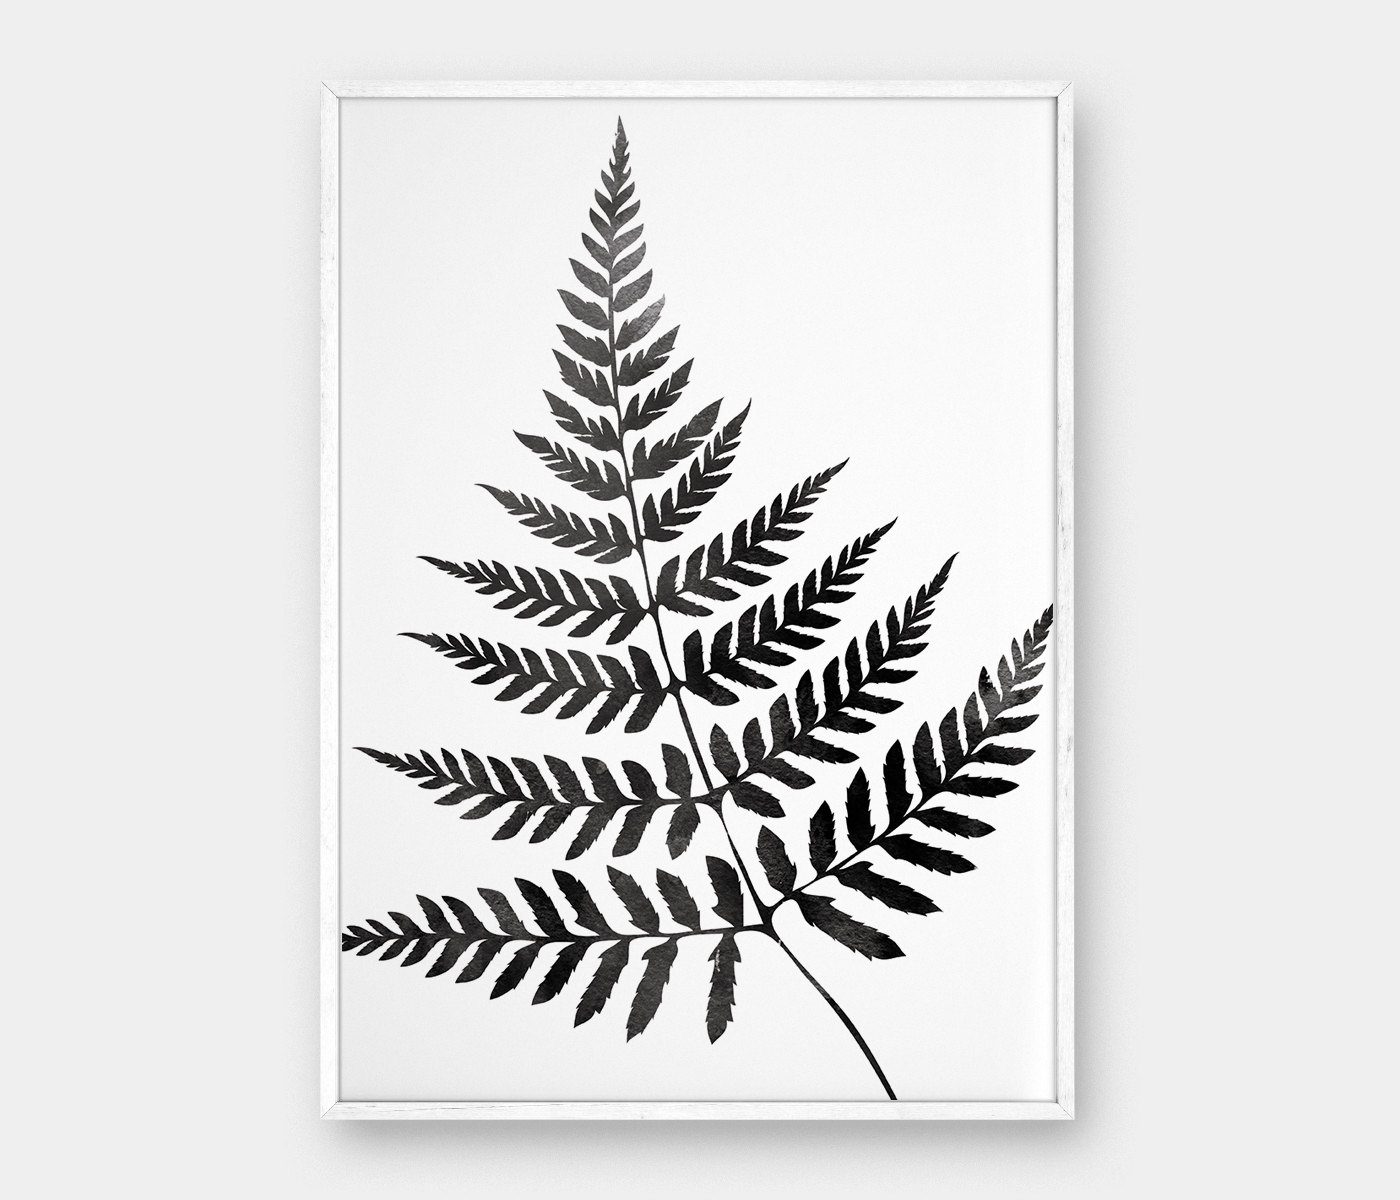 Fern Botanical Drawing At Getdrawings Free For Personal Use